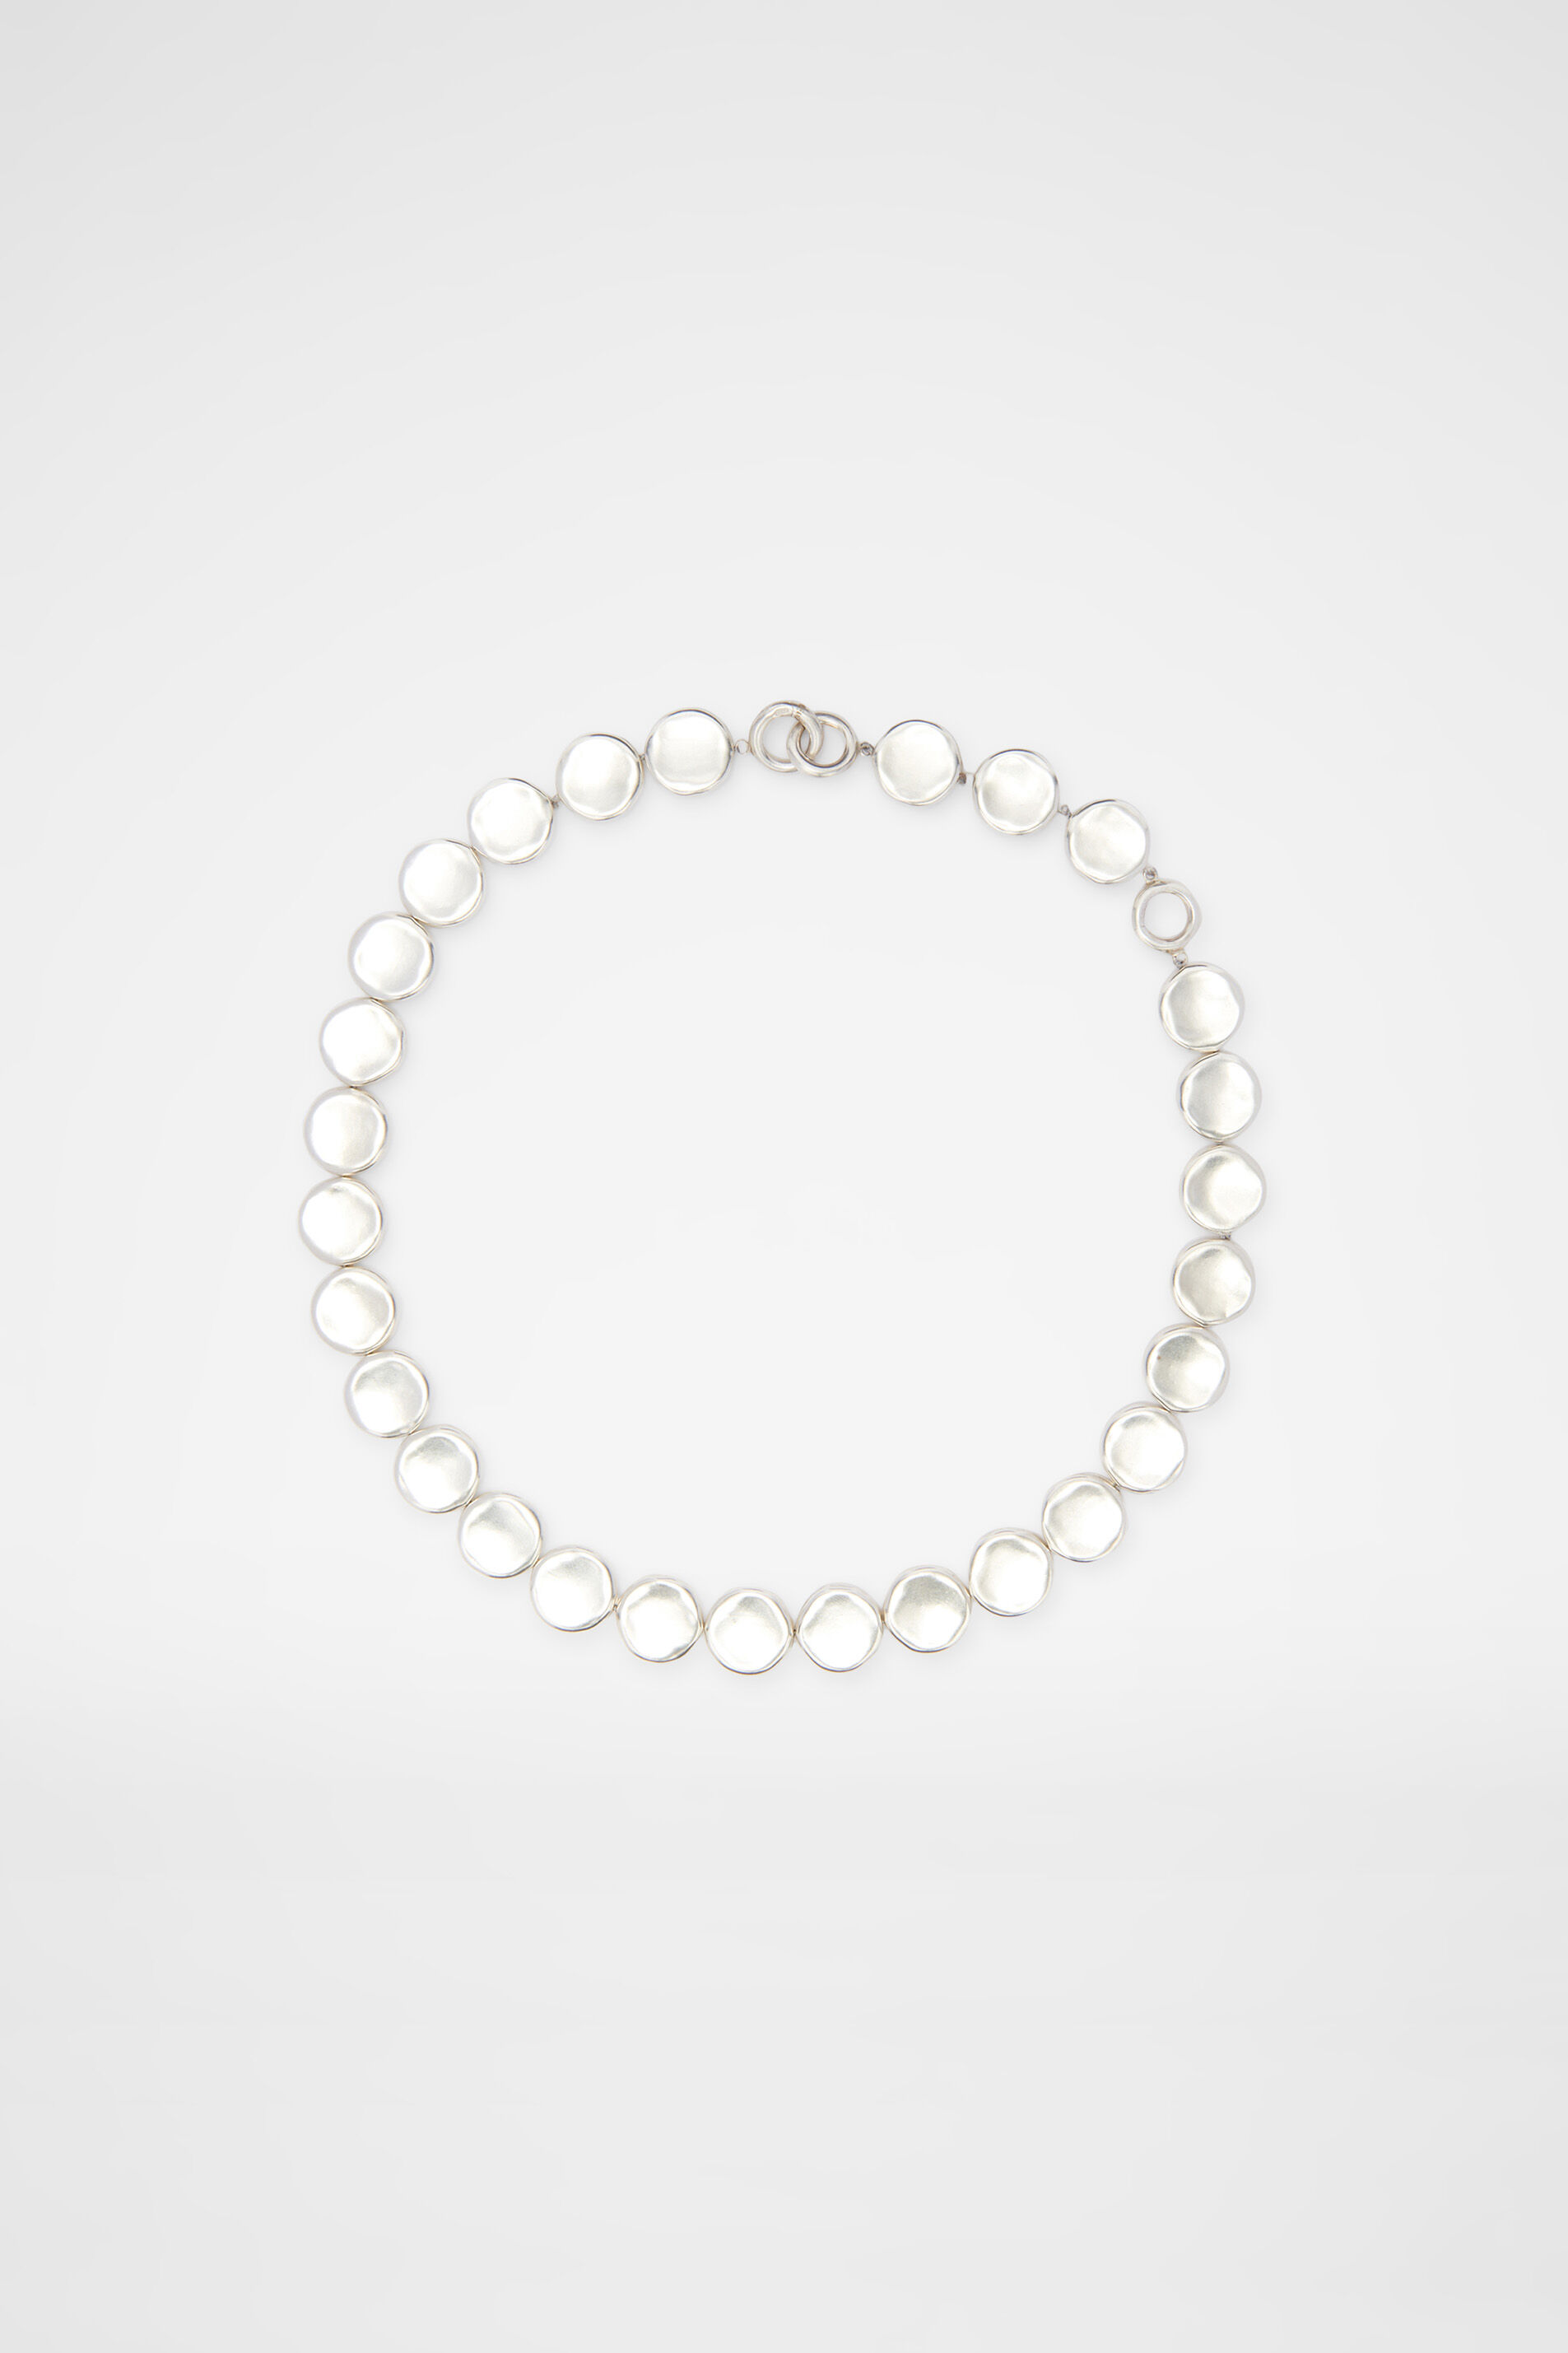 Necklace, silver, large